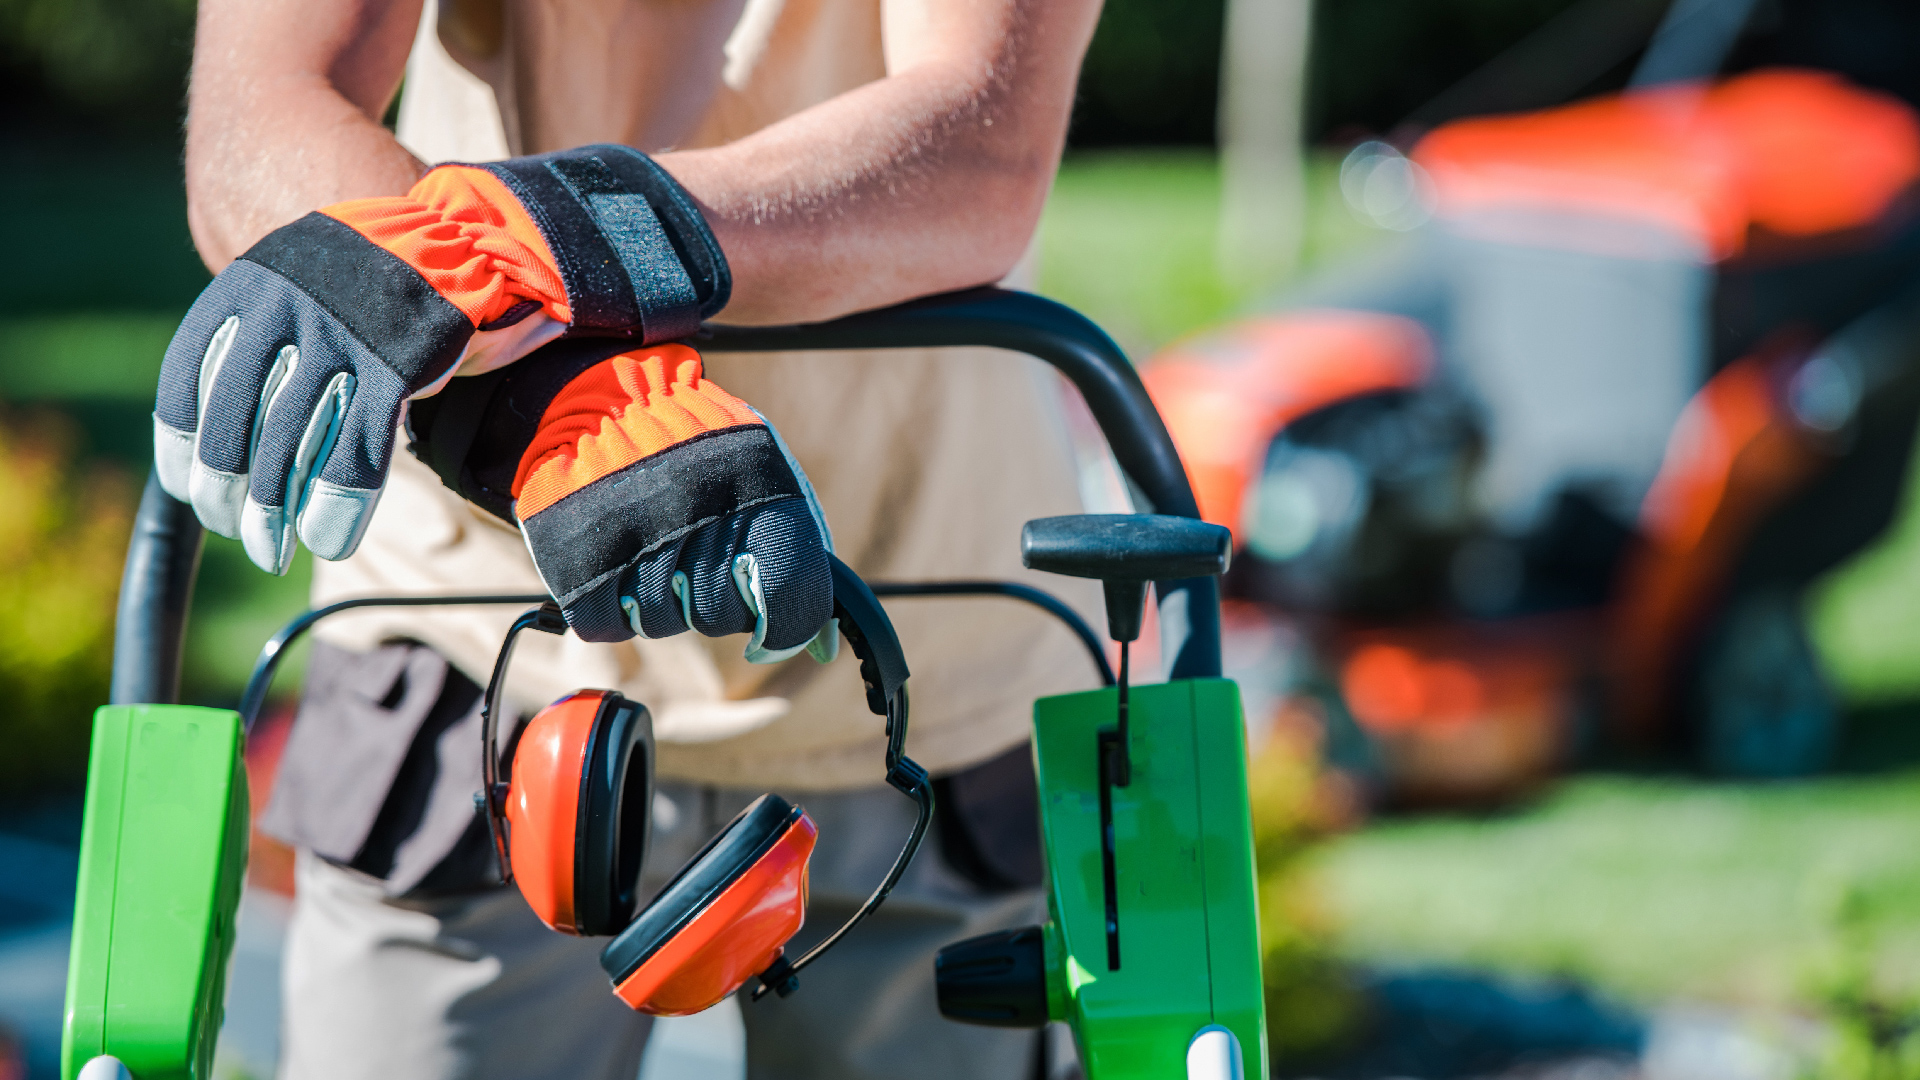 man wearing safety gloves holding ear protection leaning on lawn mower